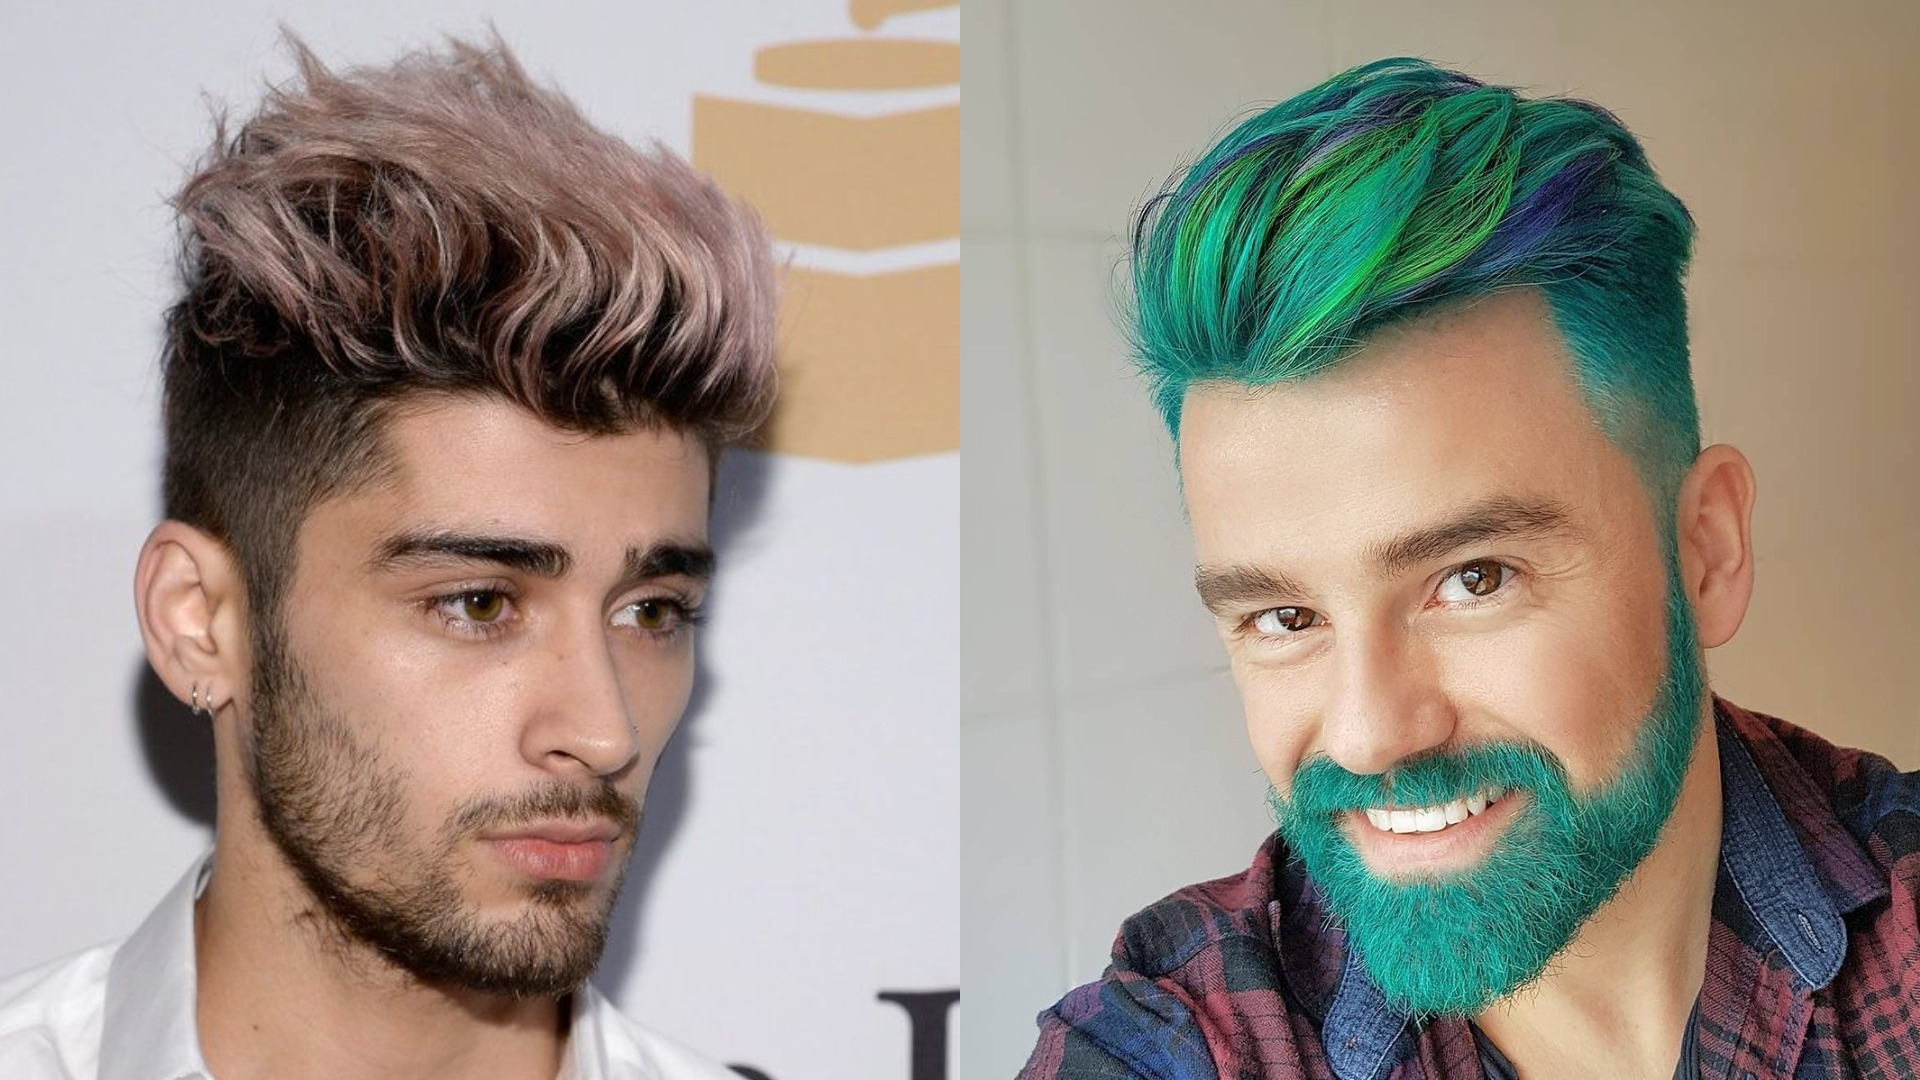 Hair-Color-for-Men 20 Hair Color for Men to Look Ultra Stylish